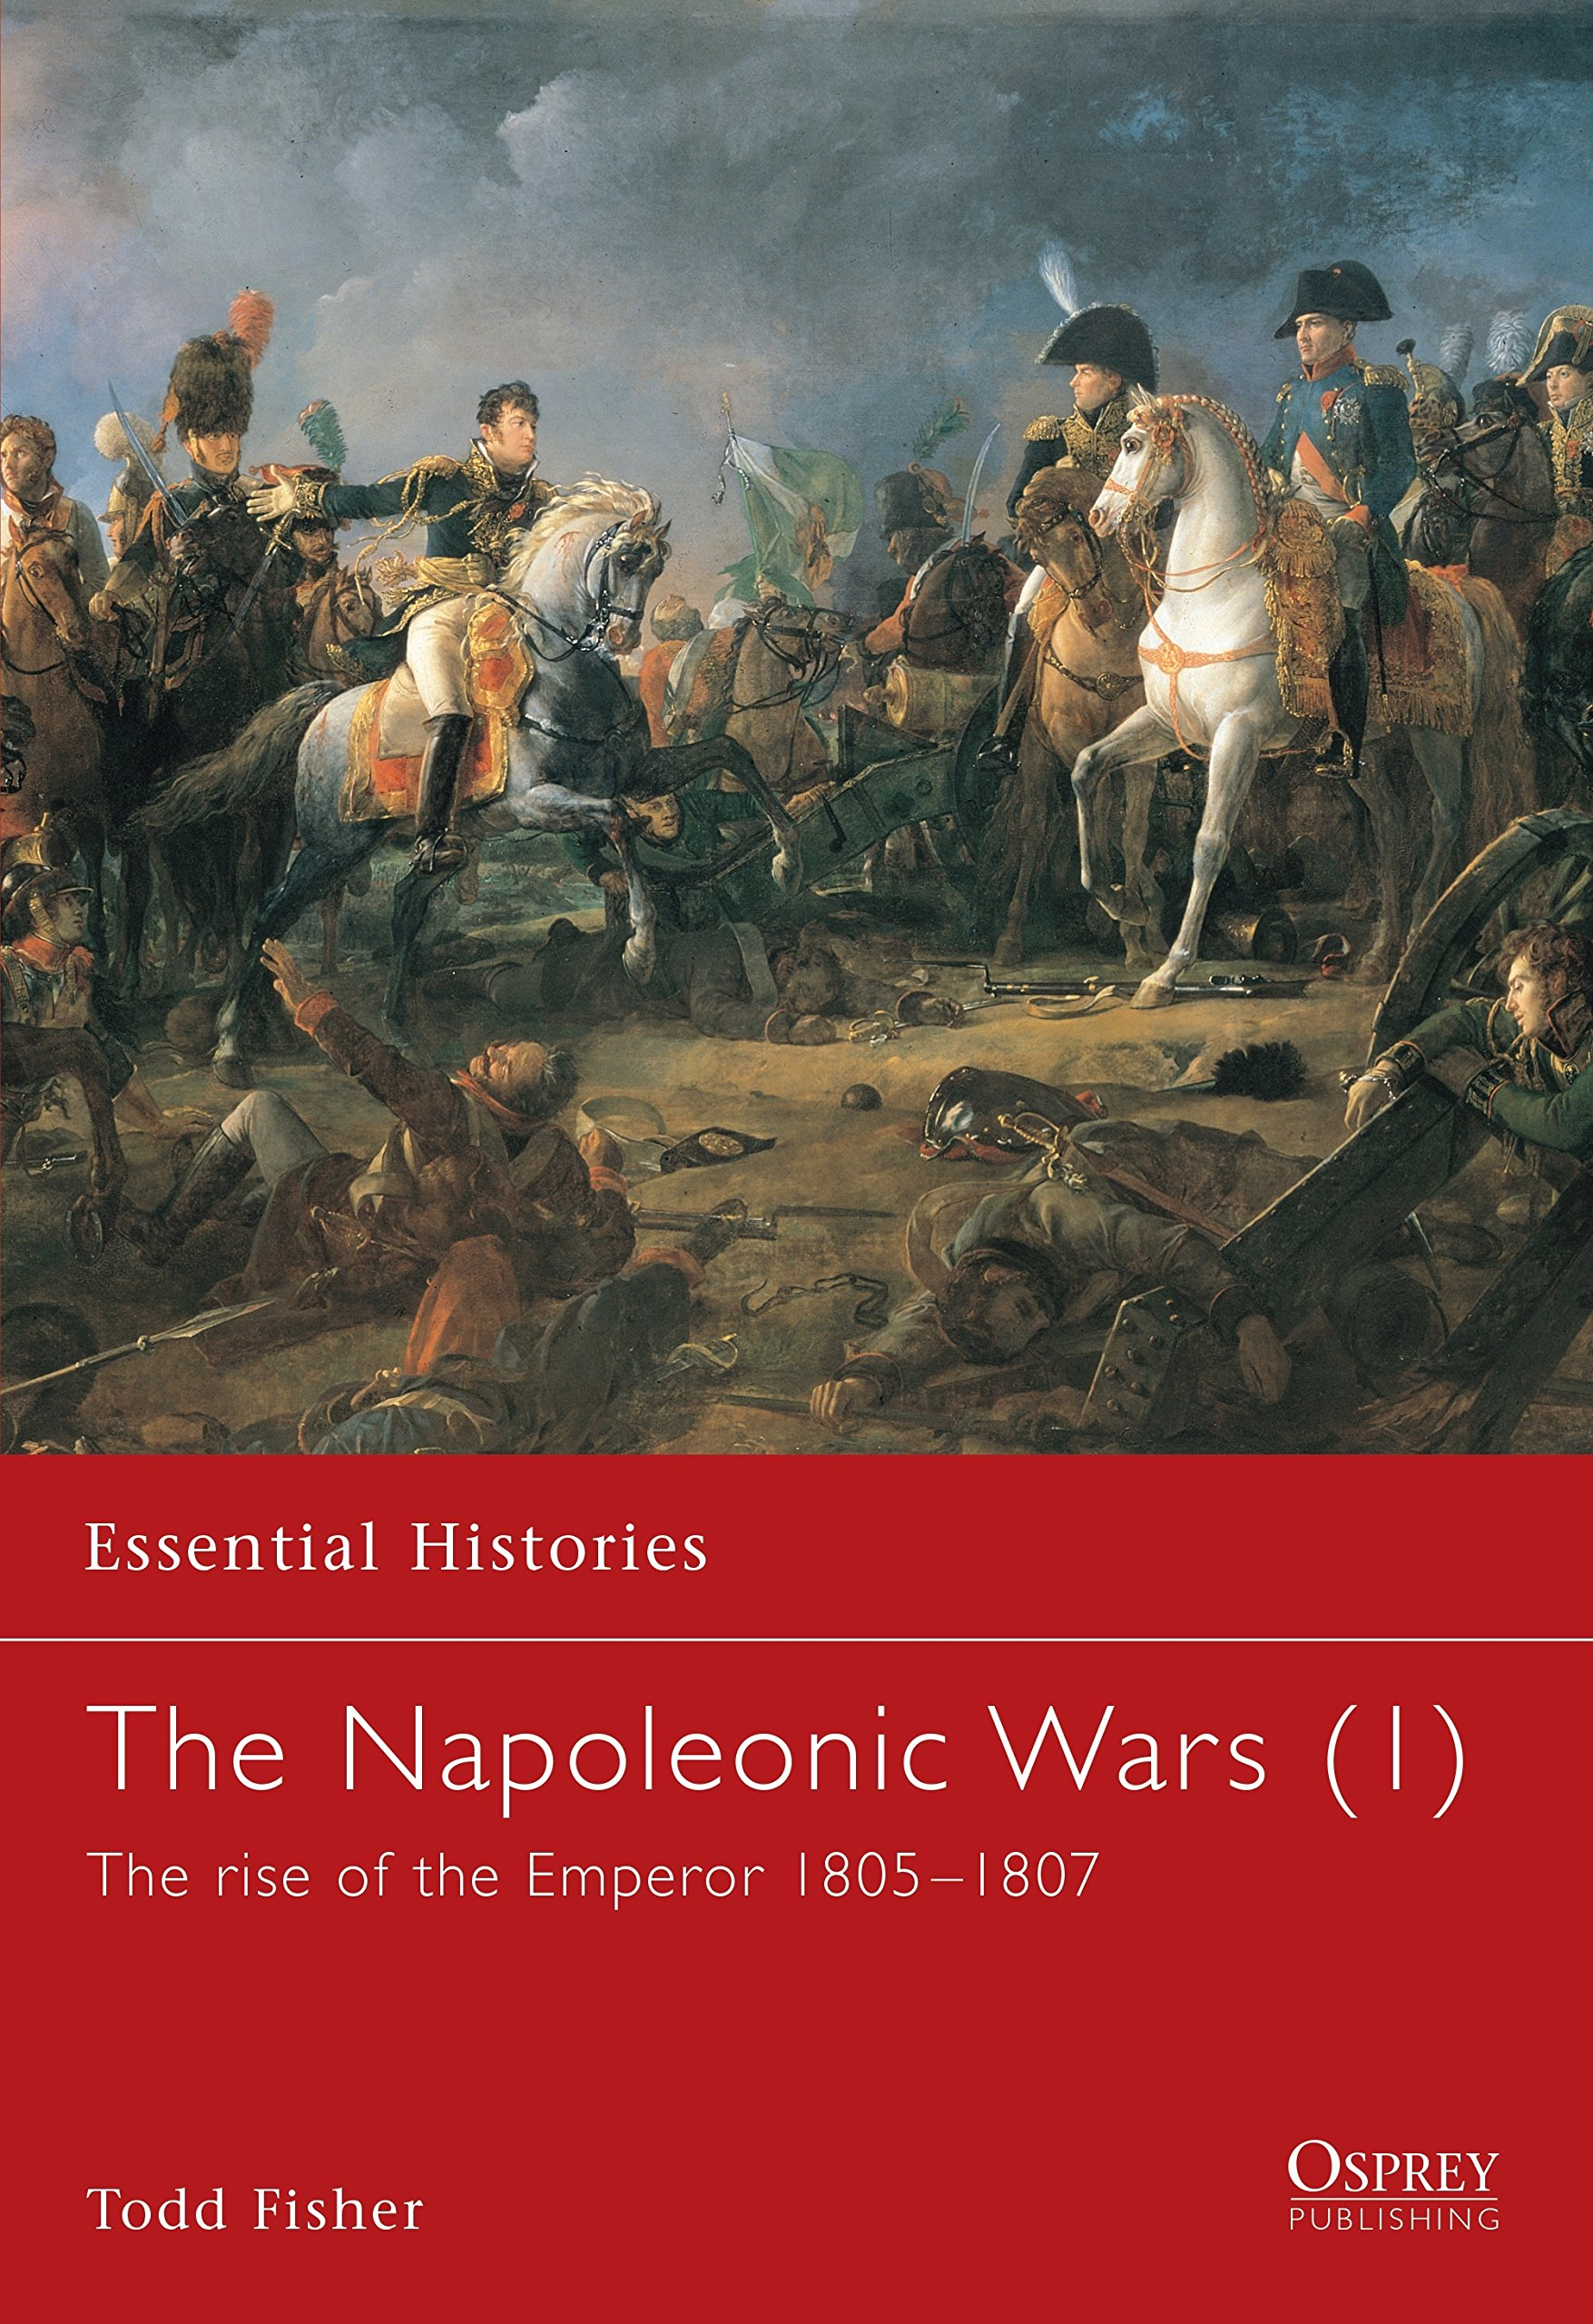 The Napoleonic Wars (1): The rise of the Emperor 1805–1807 (Essential Histories) (v. 1) PDF